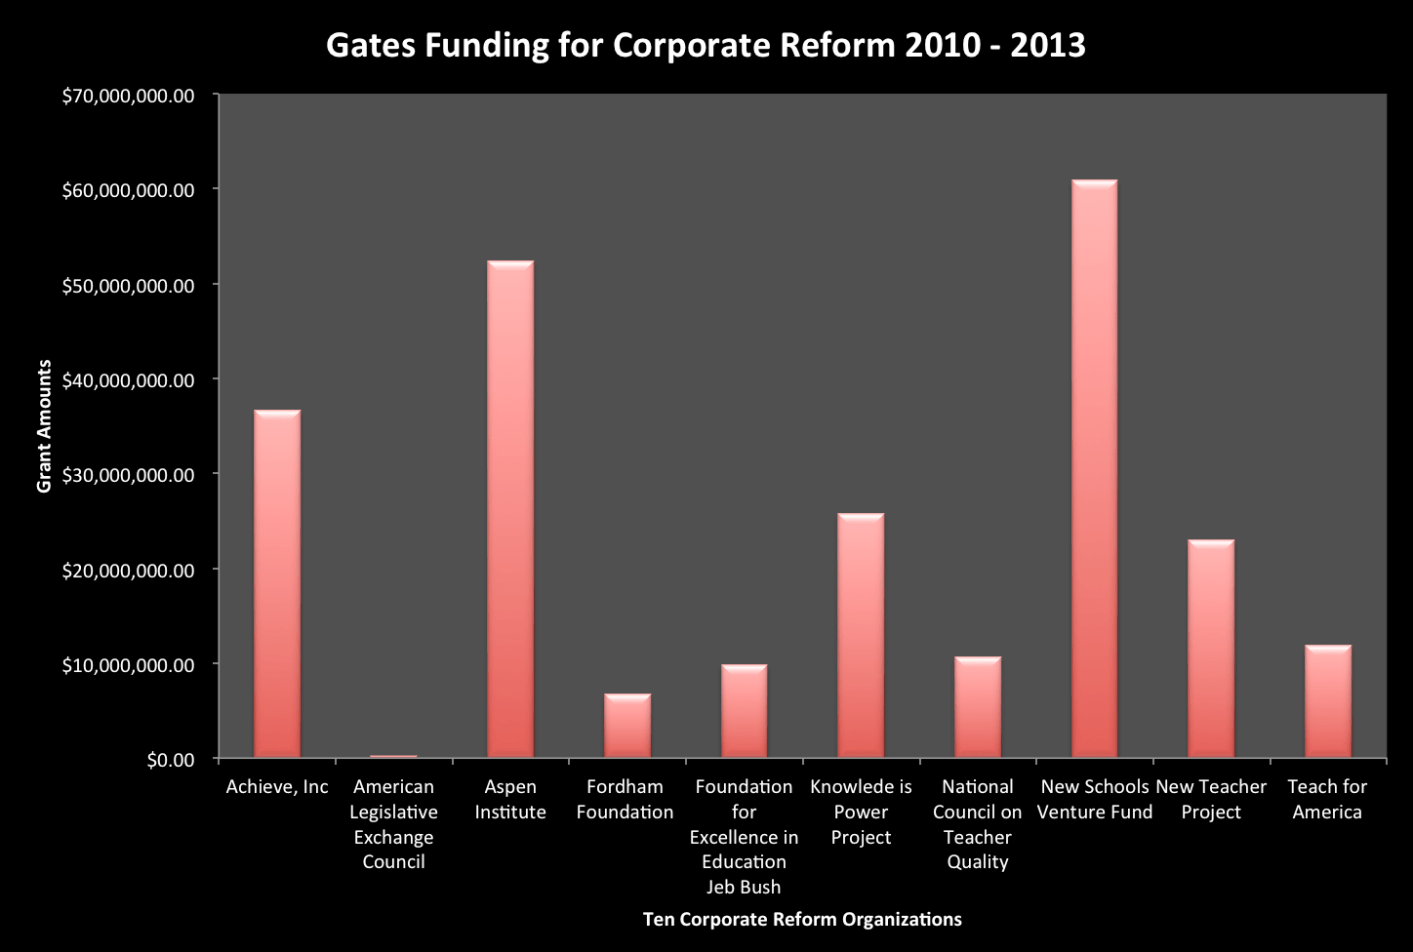 Figure 1.  Gates Funding for Corporate Reform 2010-2013.  Source of data: http://www.gatesfoundation.org/How-We-Work/Quick-Links/Grants-Database